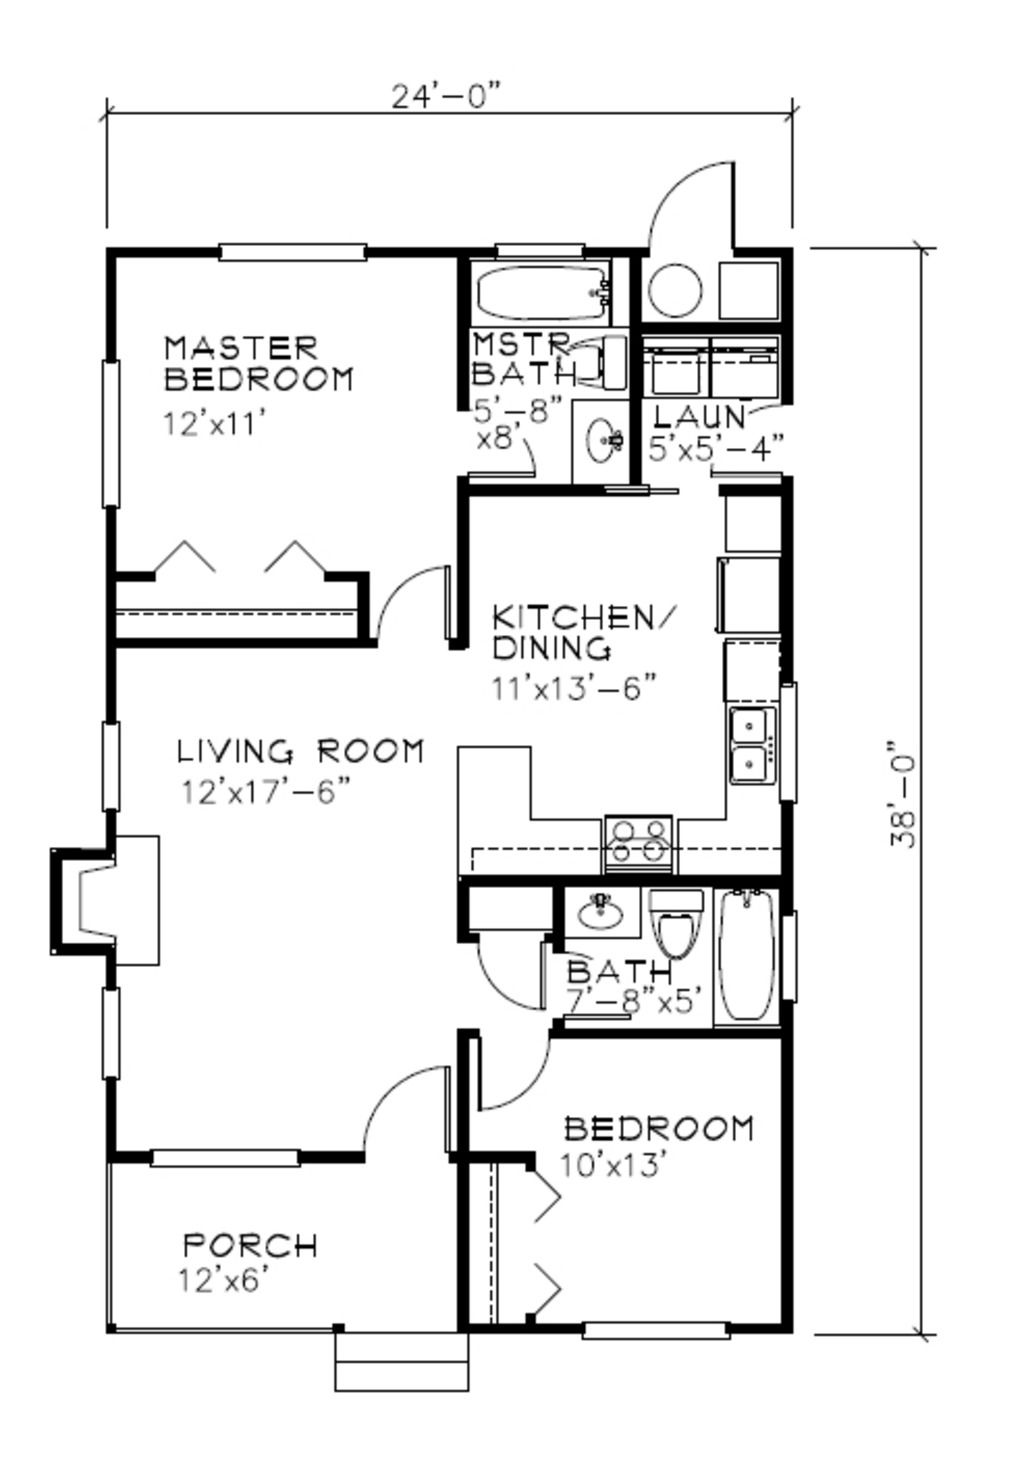 2 Bedroom Cottage Designs Cottage Style House Plan  2 Beds 2 Baths 838 Sqft Plan #51518